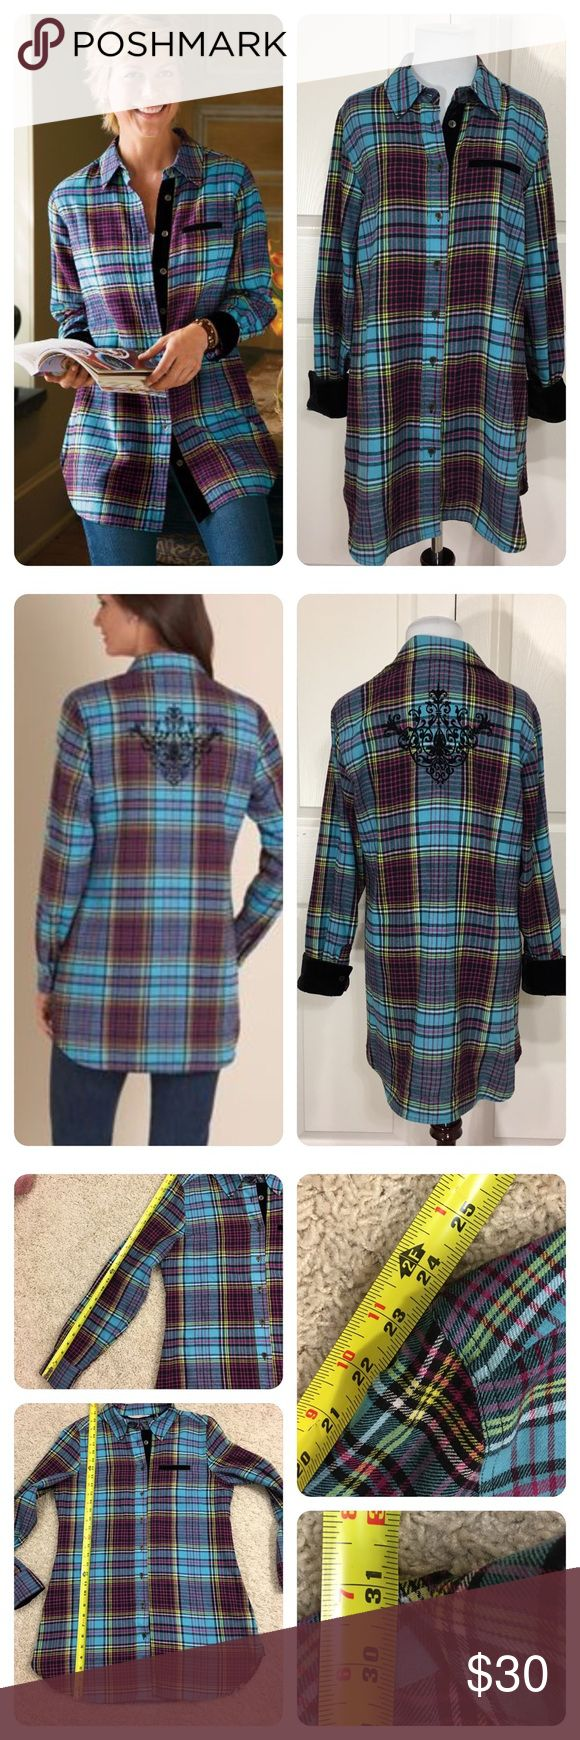 Soft Surroundings Highlands Flannel Tunic Shirt Highlands Flannel Tunic Shirt from Soft Surroundings! Multi-colored plaid with black velvet trim on collar and cuffs. Black velvet design on back of shirt. No flaws noted.   pink/yellow/green/blue/black plaid soft surroundings Tops